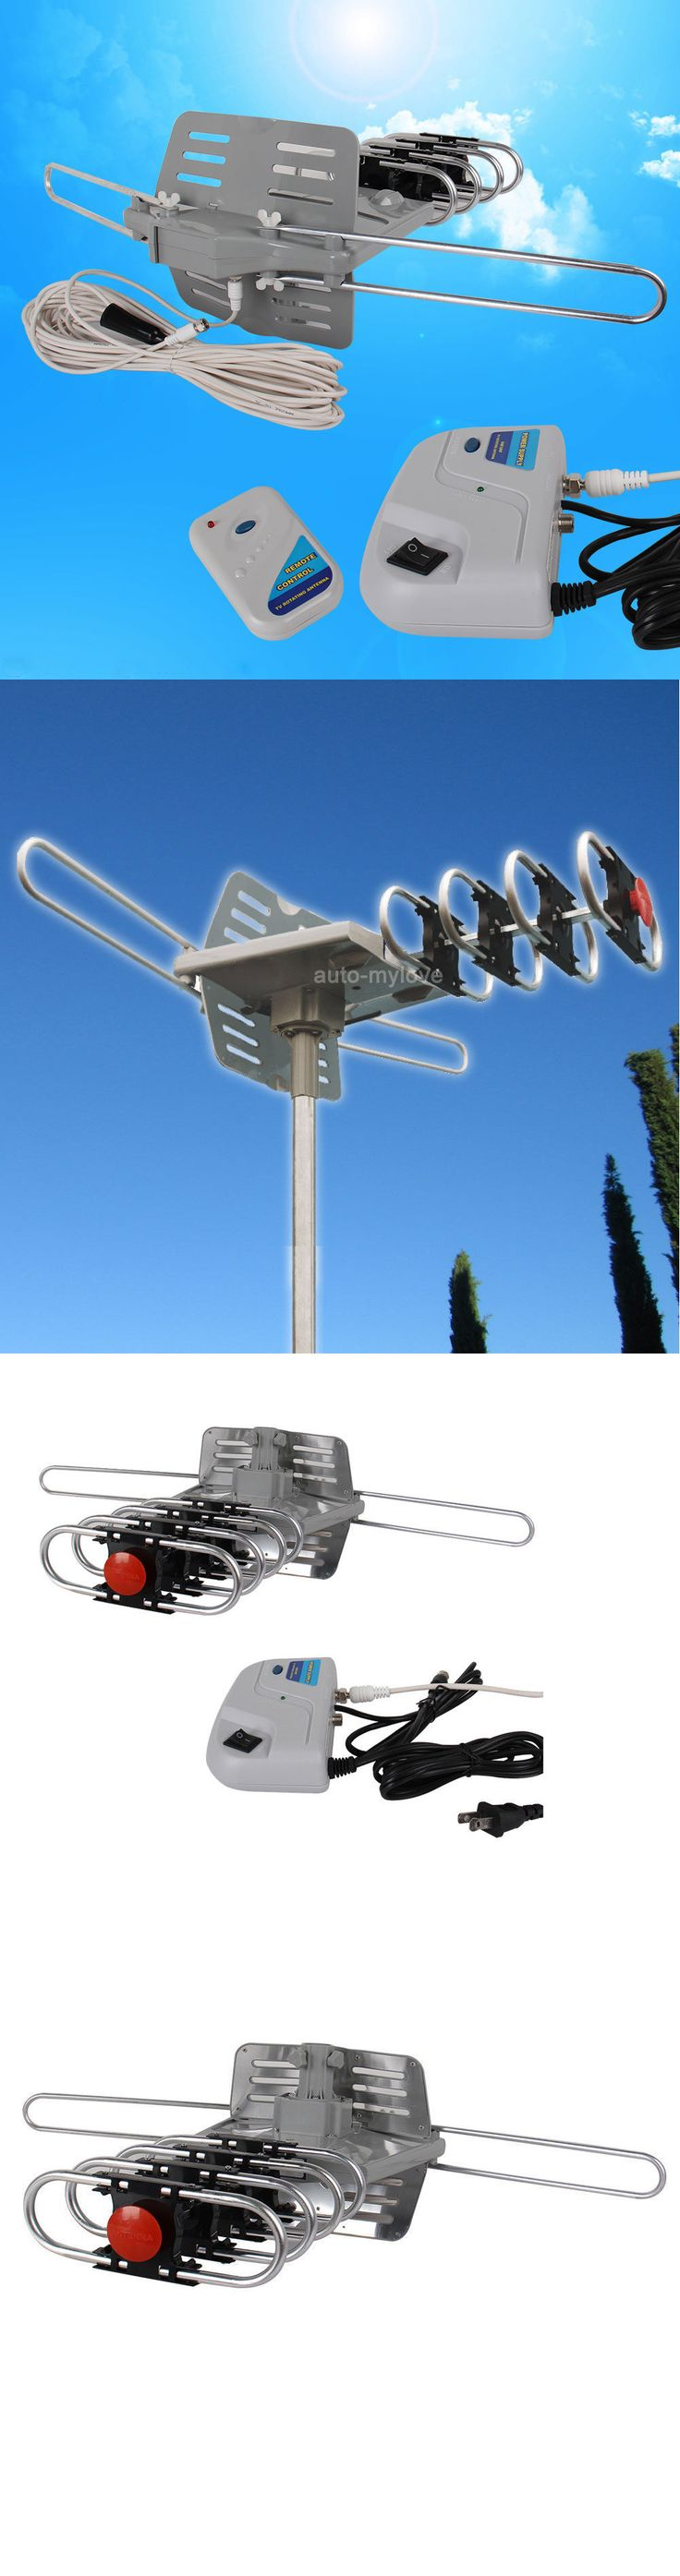 Antennas and Dishes: Long Range 150Miles Outdoor Tv Antenna Motorized Amplified Hdtv Uhf Vhf 36Db BUY IT NOW ONLY: $33.57